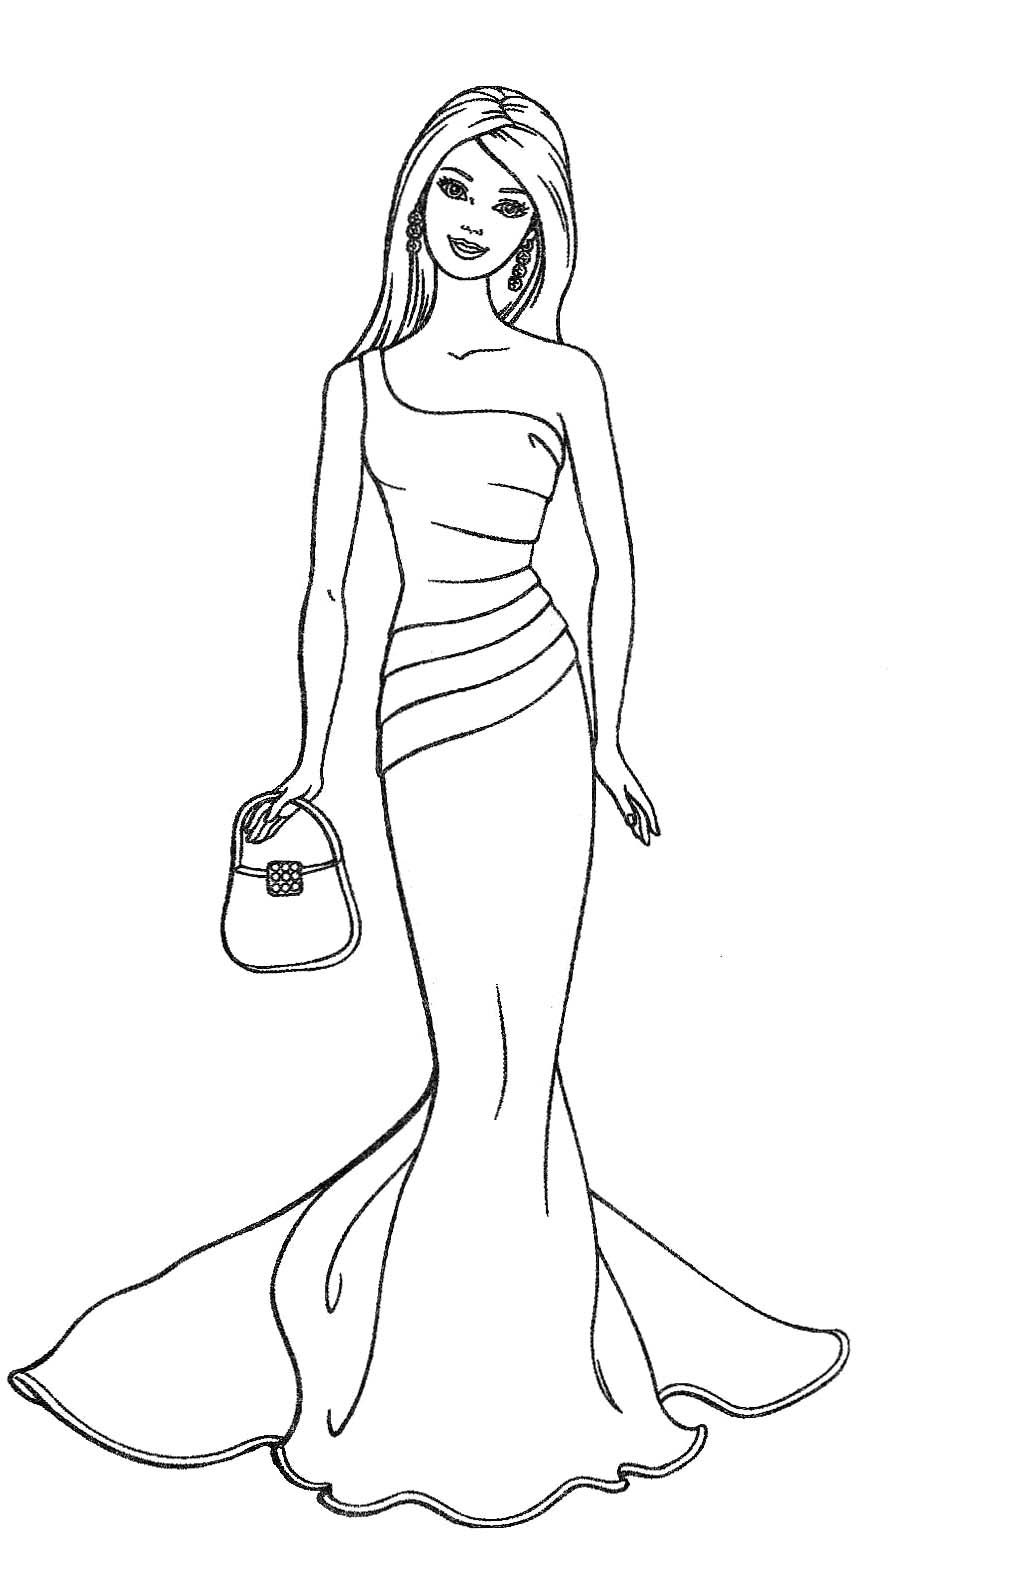 barbie doll coloring pages free printable barbie coloring pages for kids pages barbie doll coloring